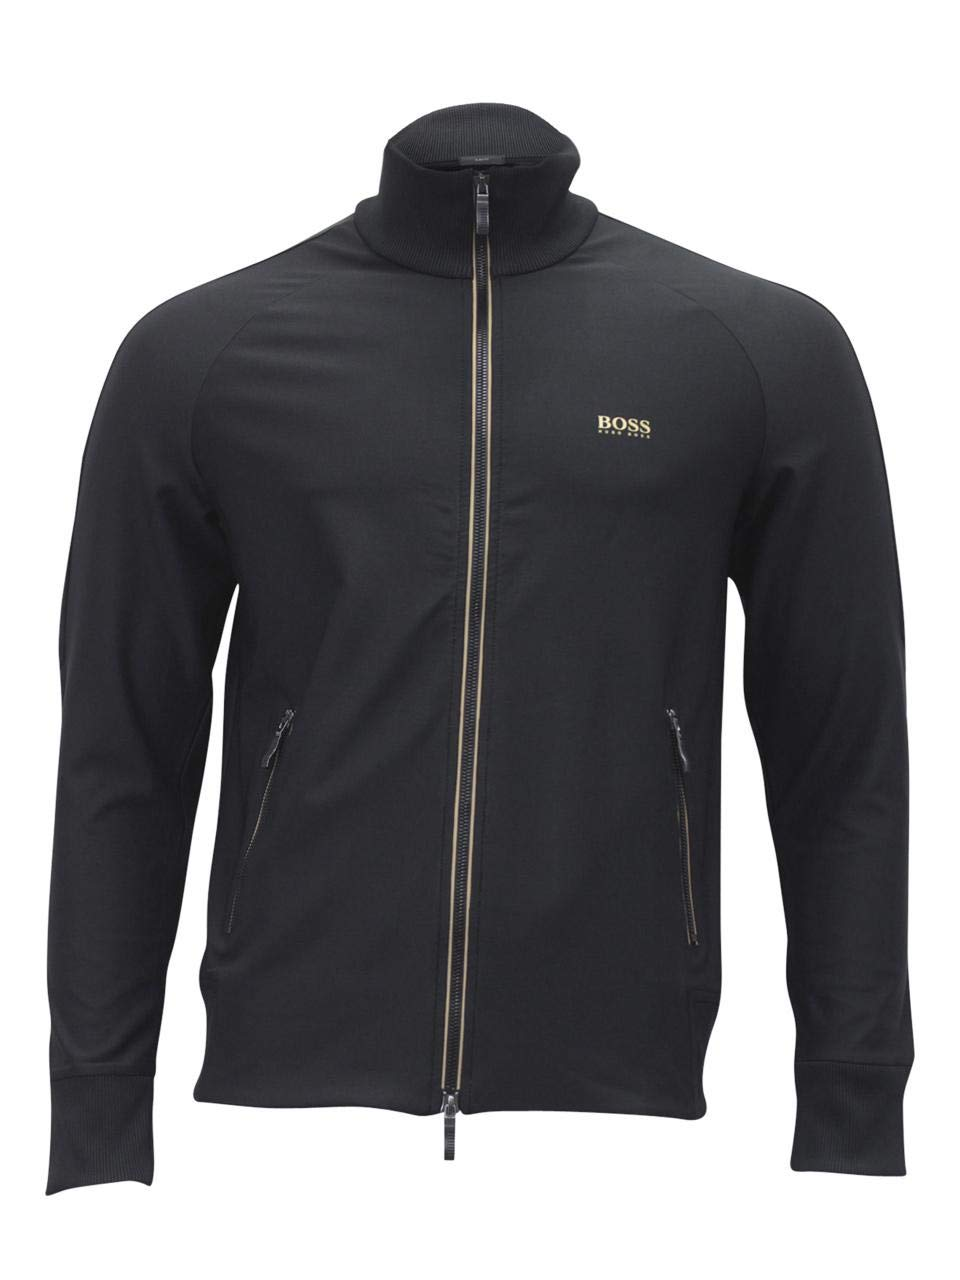 Hugo Boss Zip-Through Sweatshirt in Active-Stretch with S.Cafe (Large)